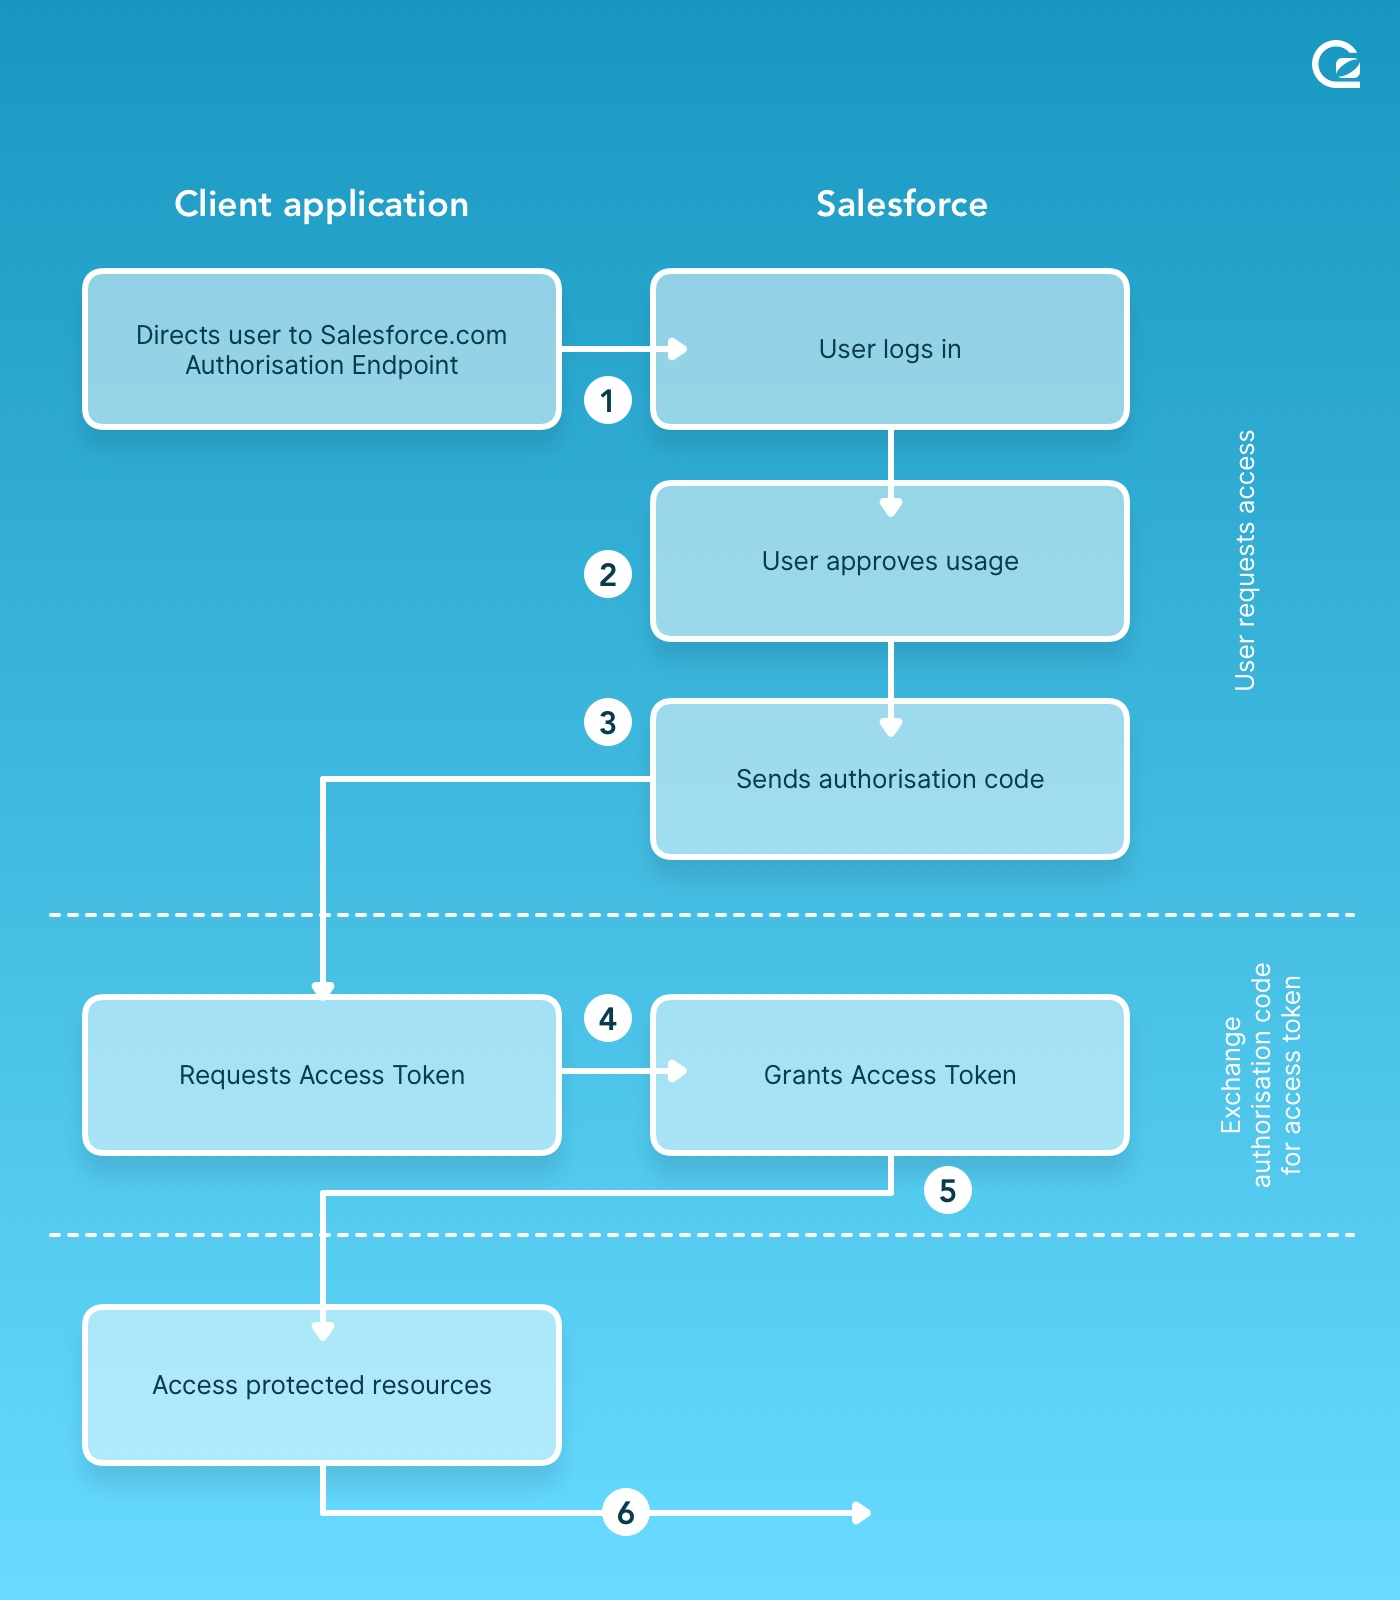 Salesforce Oauth data flow diagram. by GoSquared